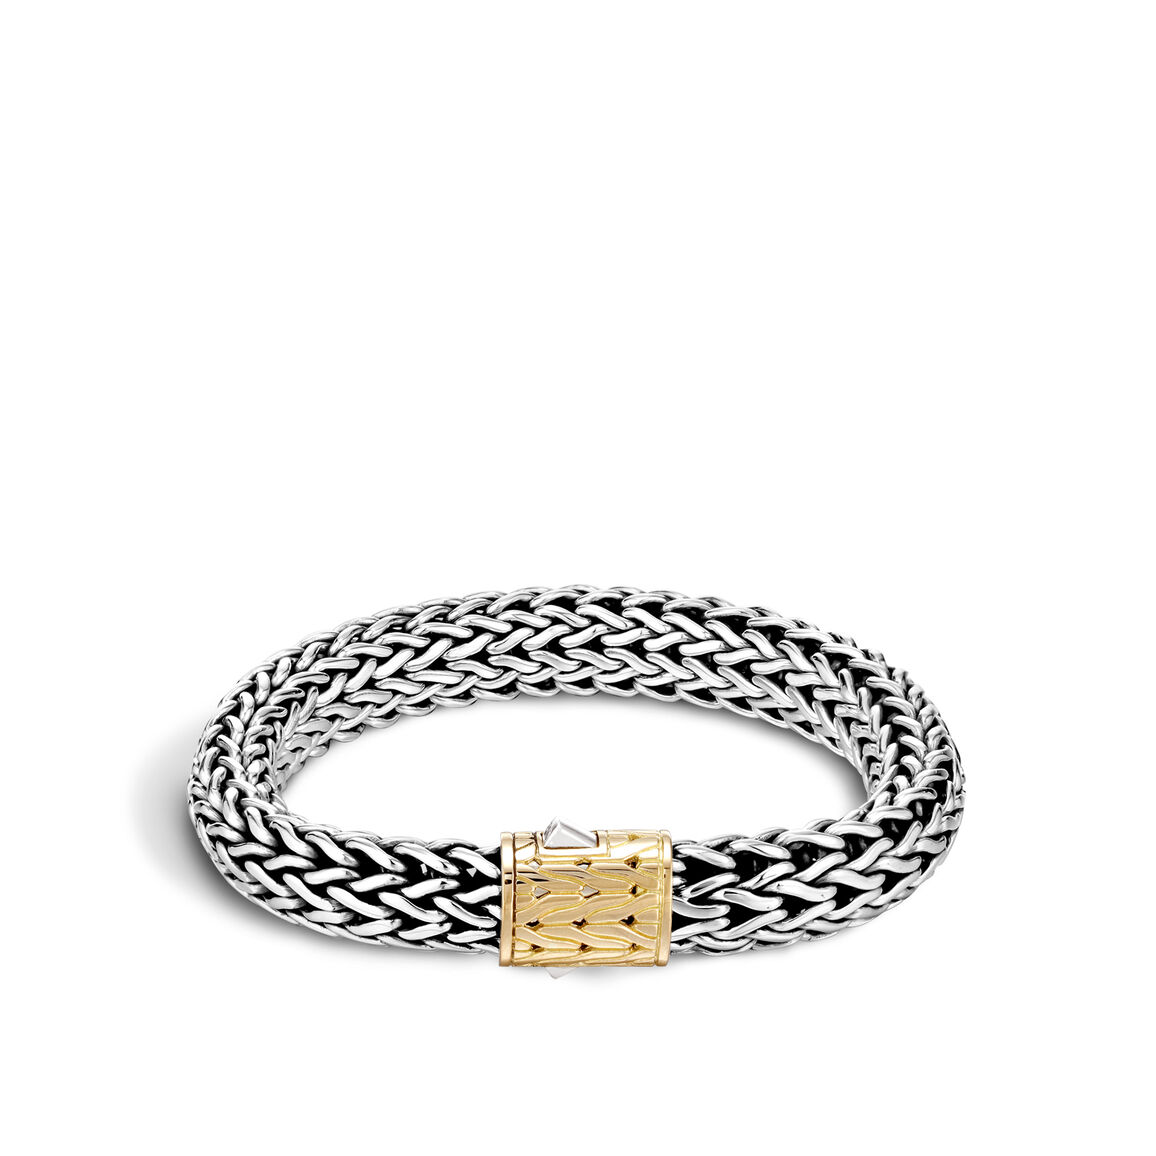 Classic Chain 10.5MM   Bracelet in Silver and 18K Gold